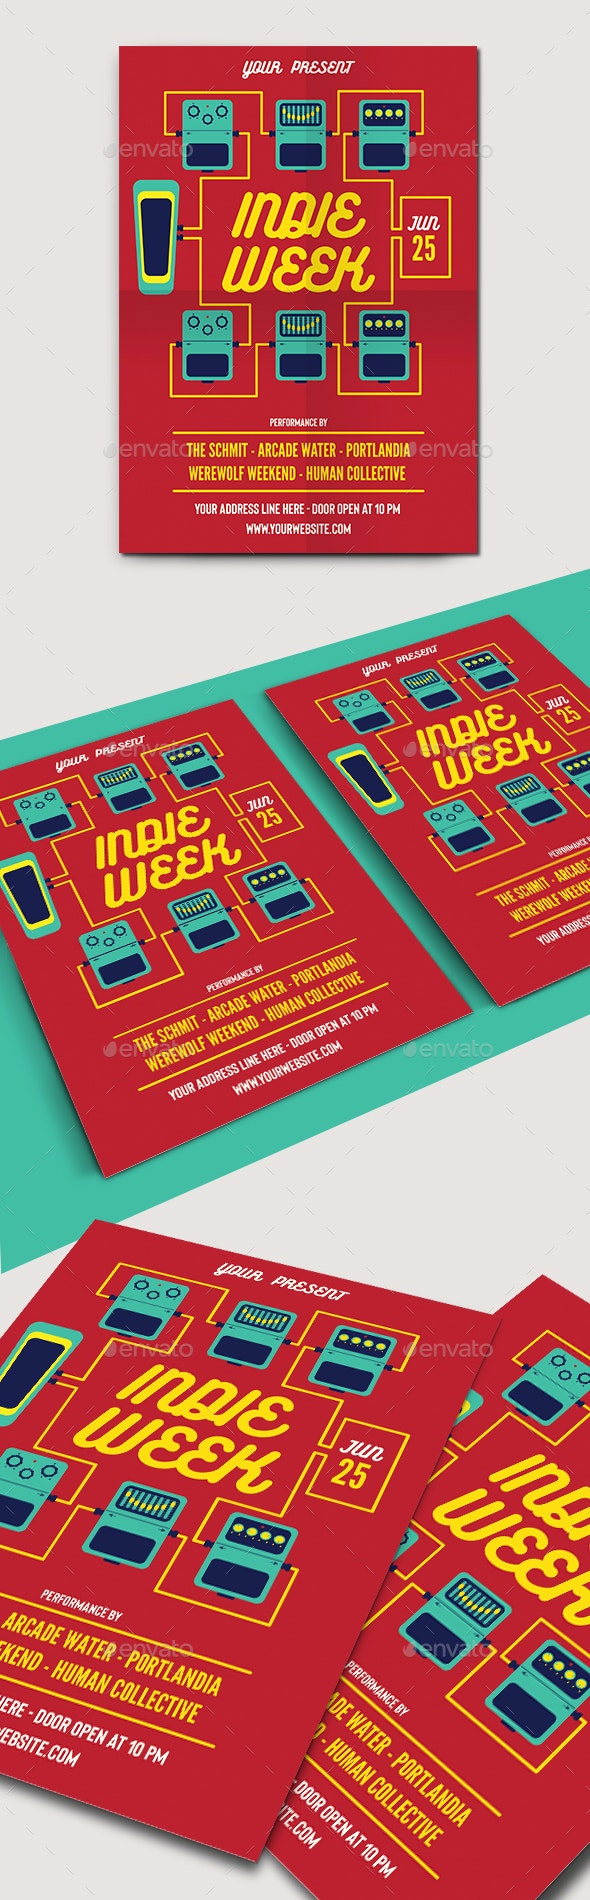 Indie Week Flyer Template - Concerts Events